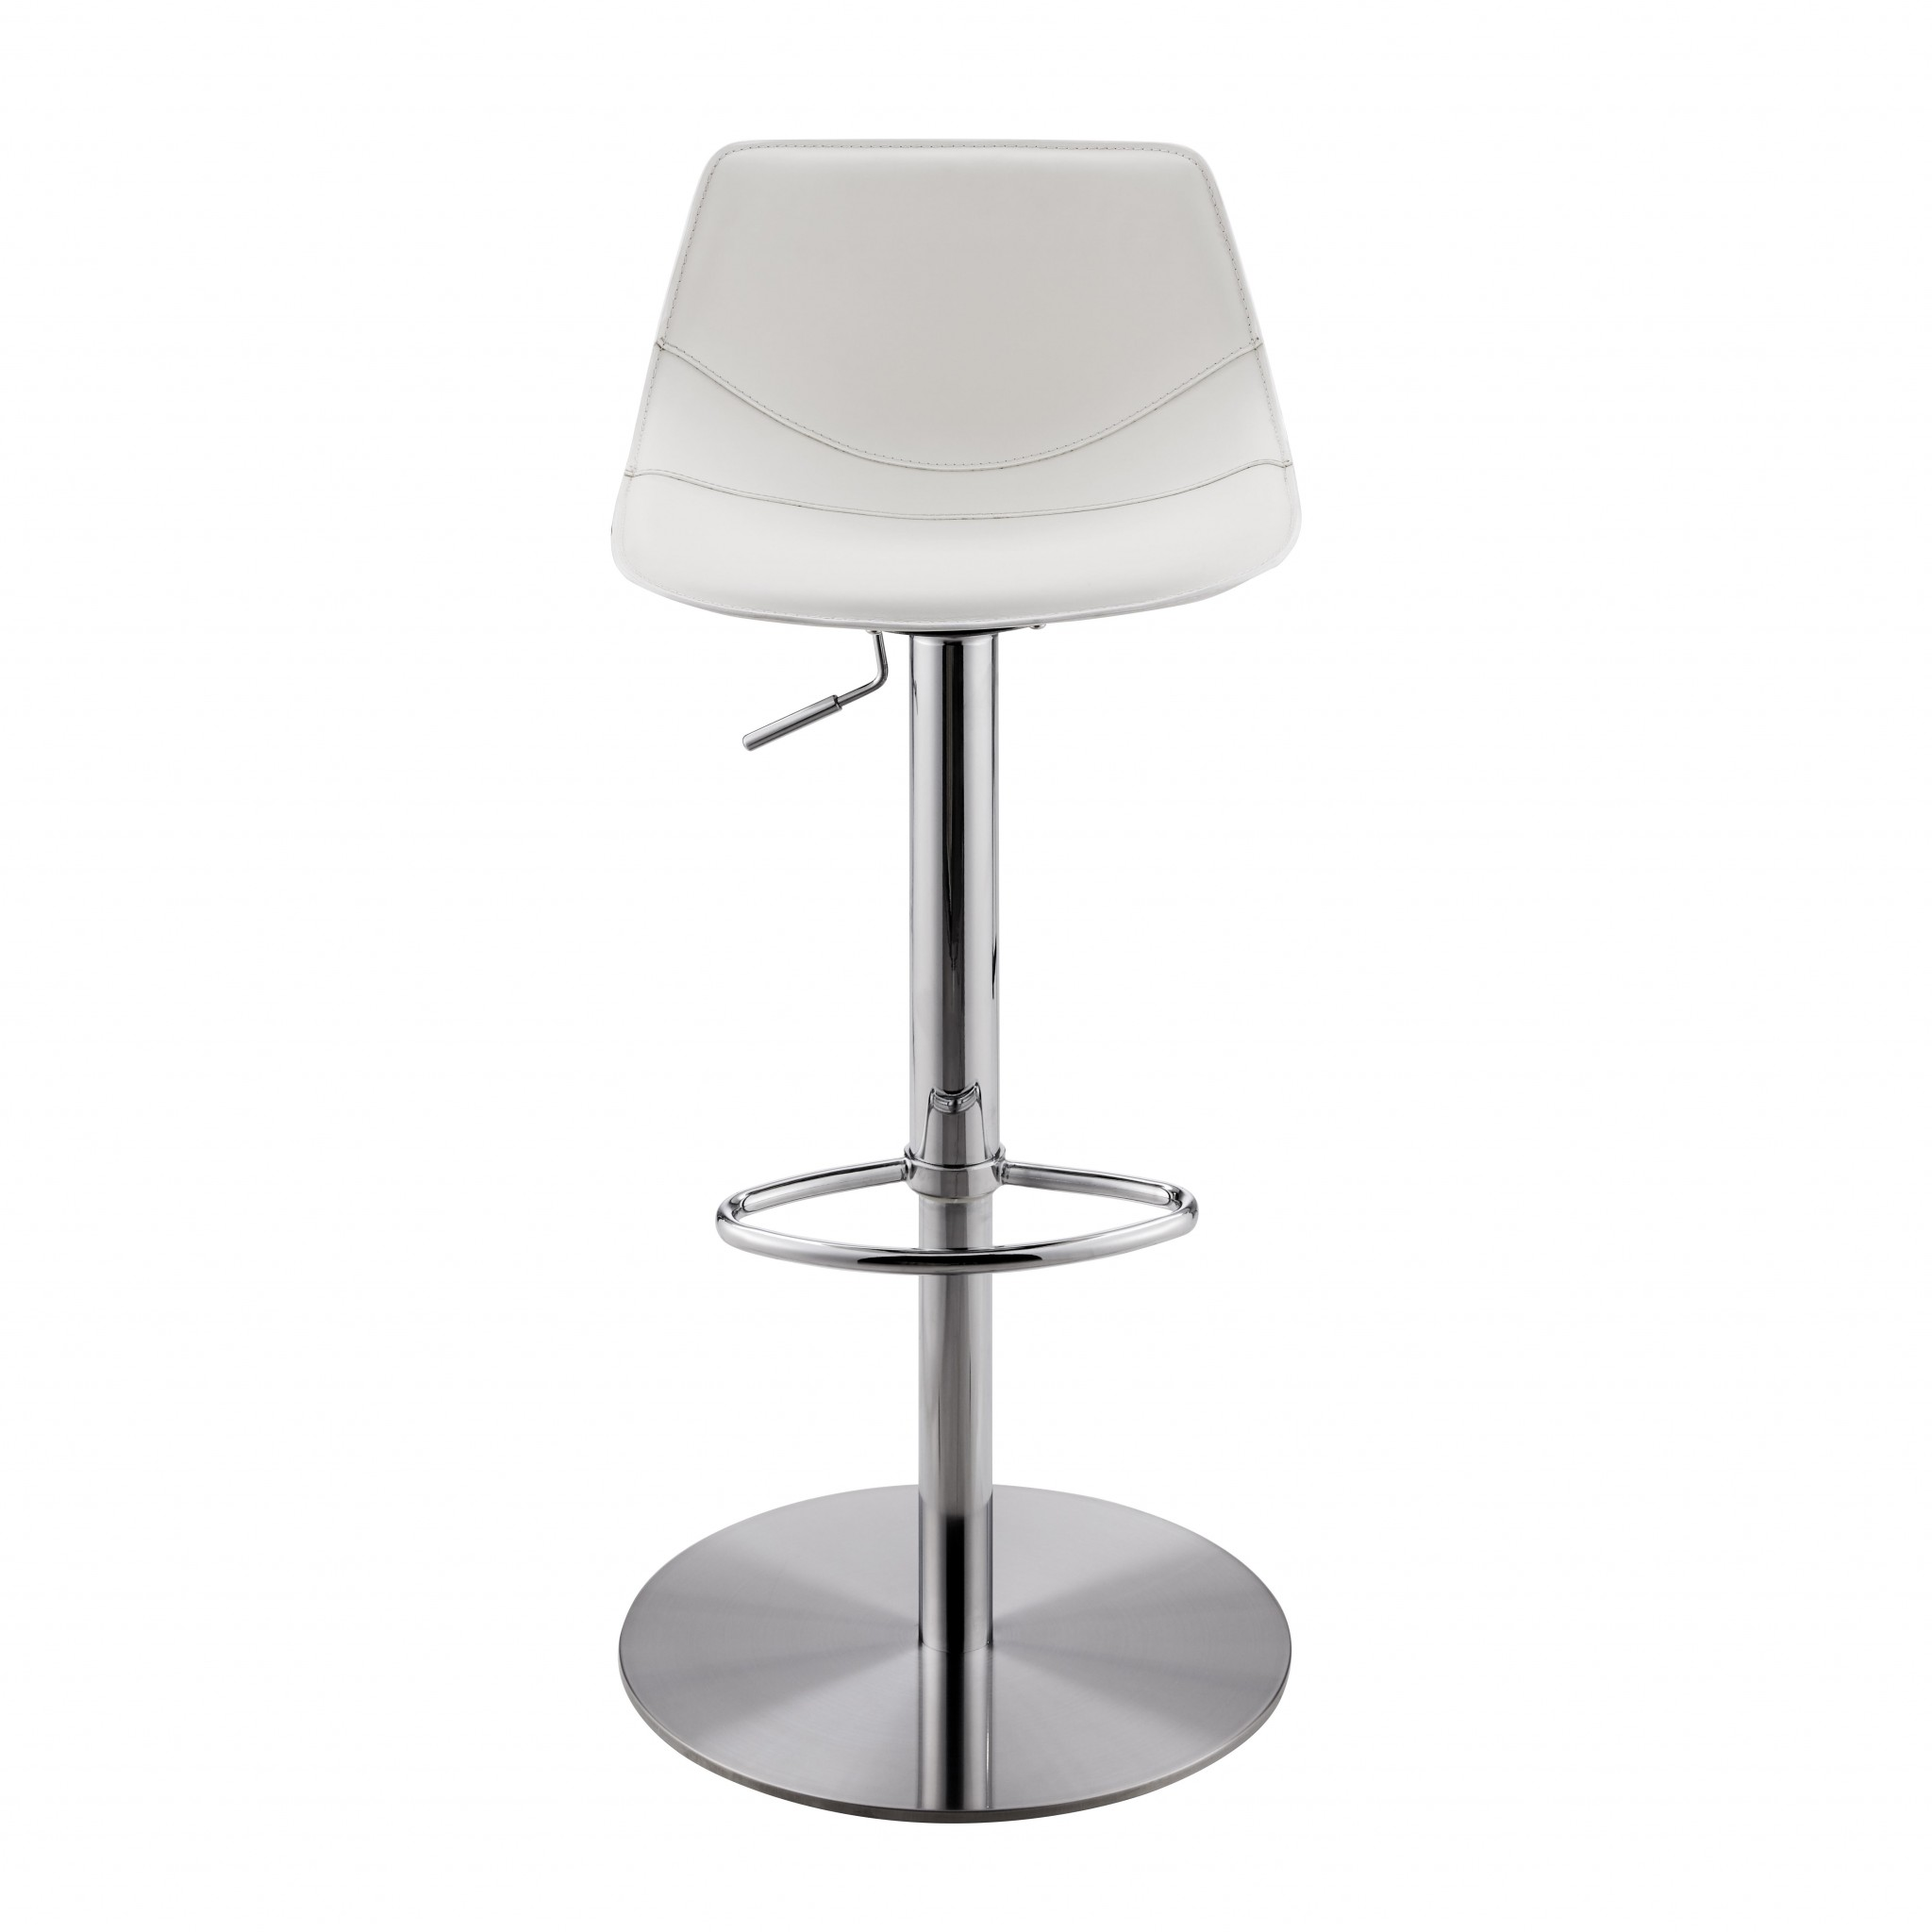 """18.12"""" X 18.9"""" X 39.57"""" White Leatherette Over Steel Frame Adjustable Swivel Bar/Counter Stool with Brushed Stainless Steel Base"""